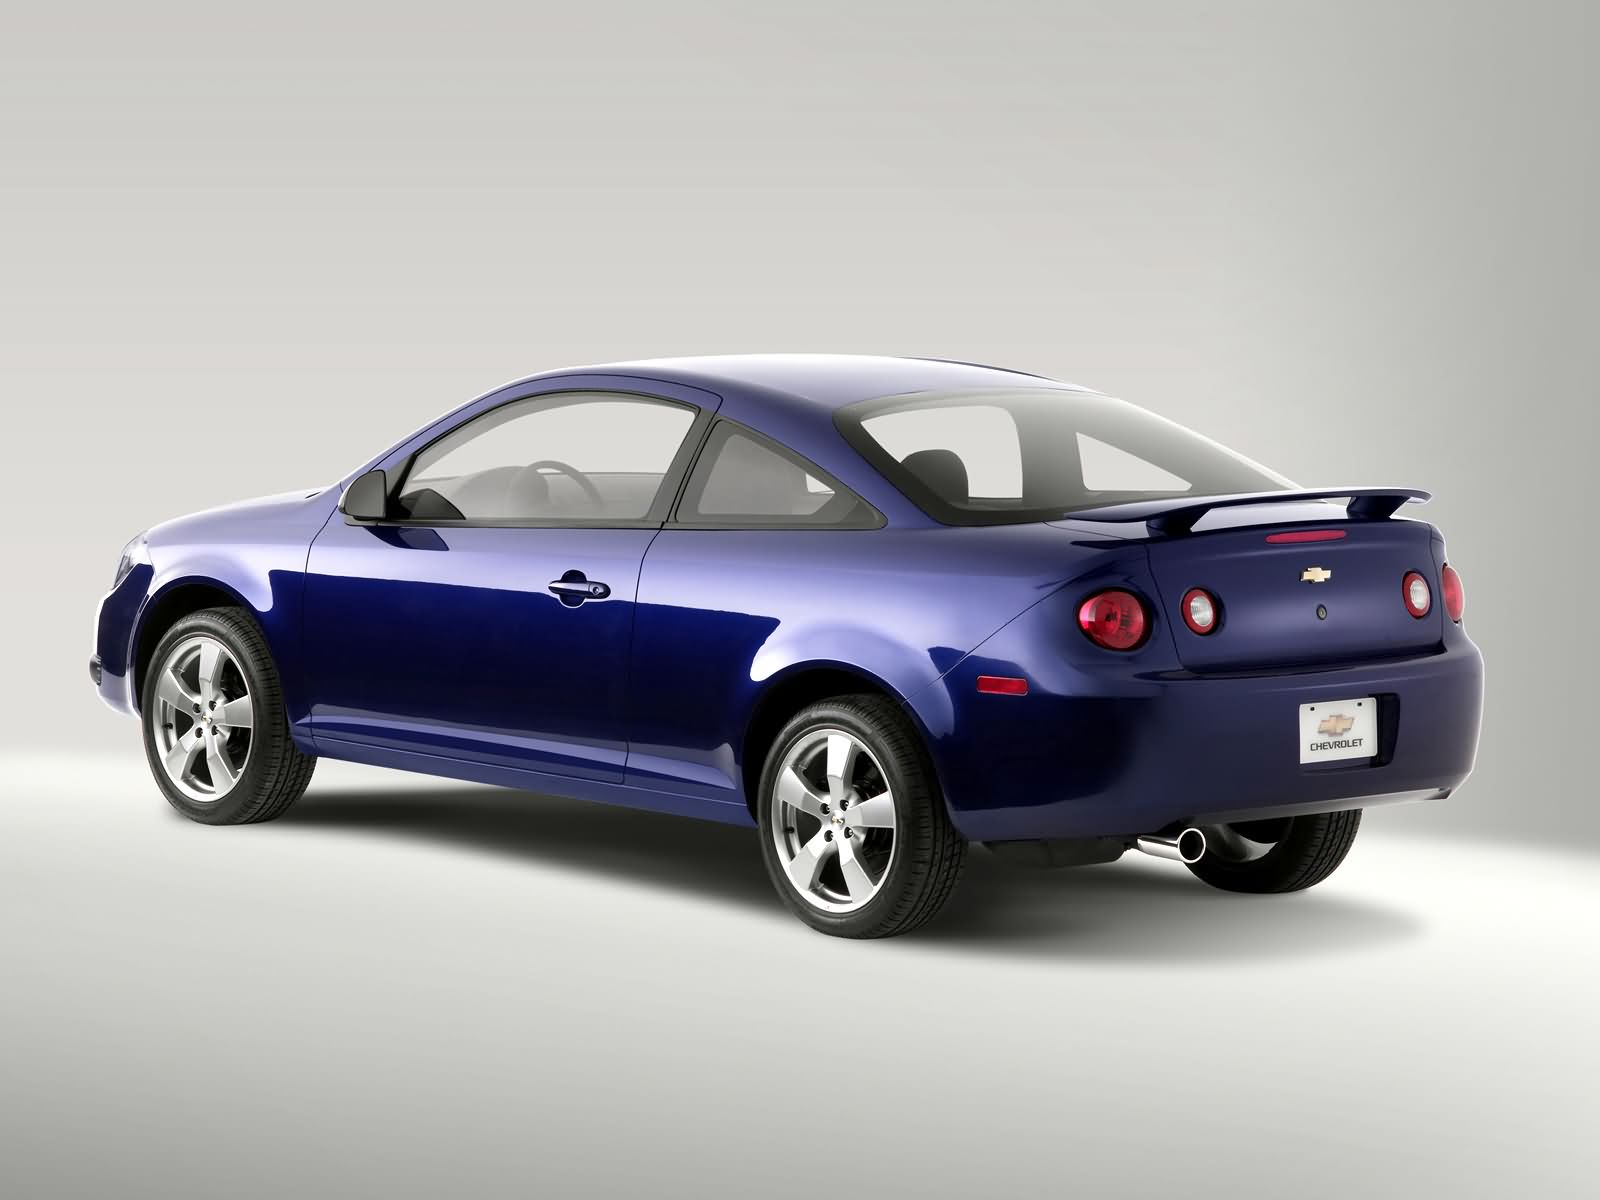 Chevrolet Cobalt photo 7637